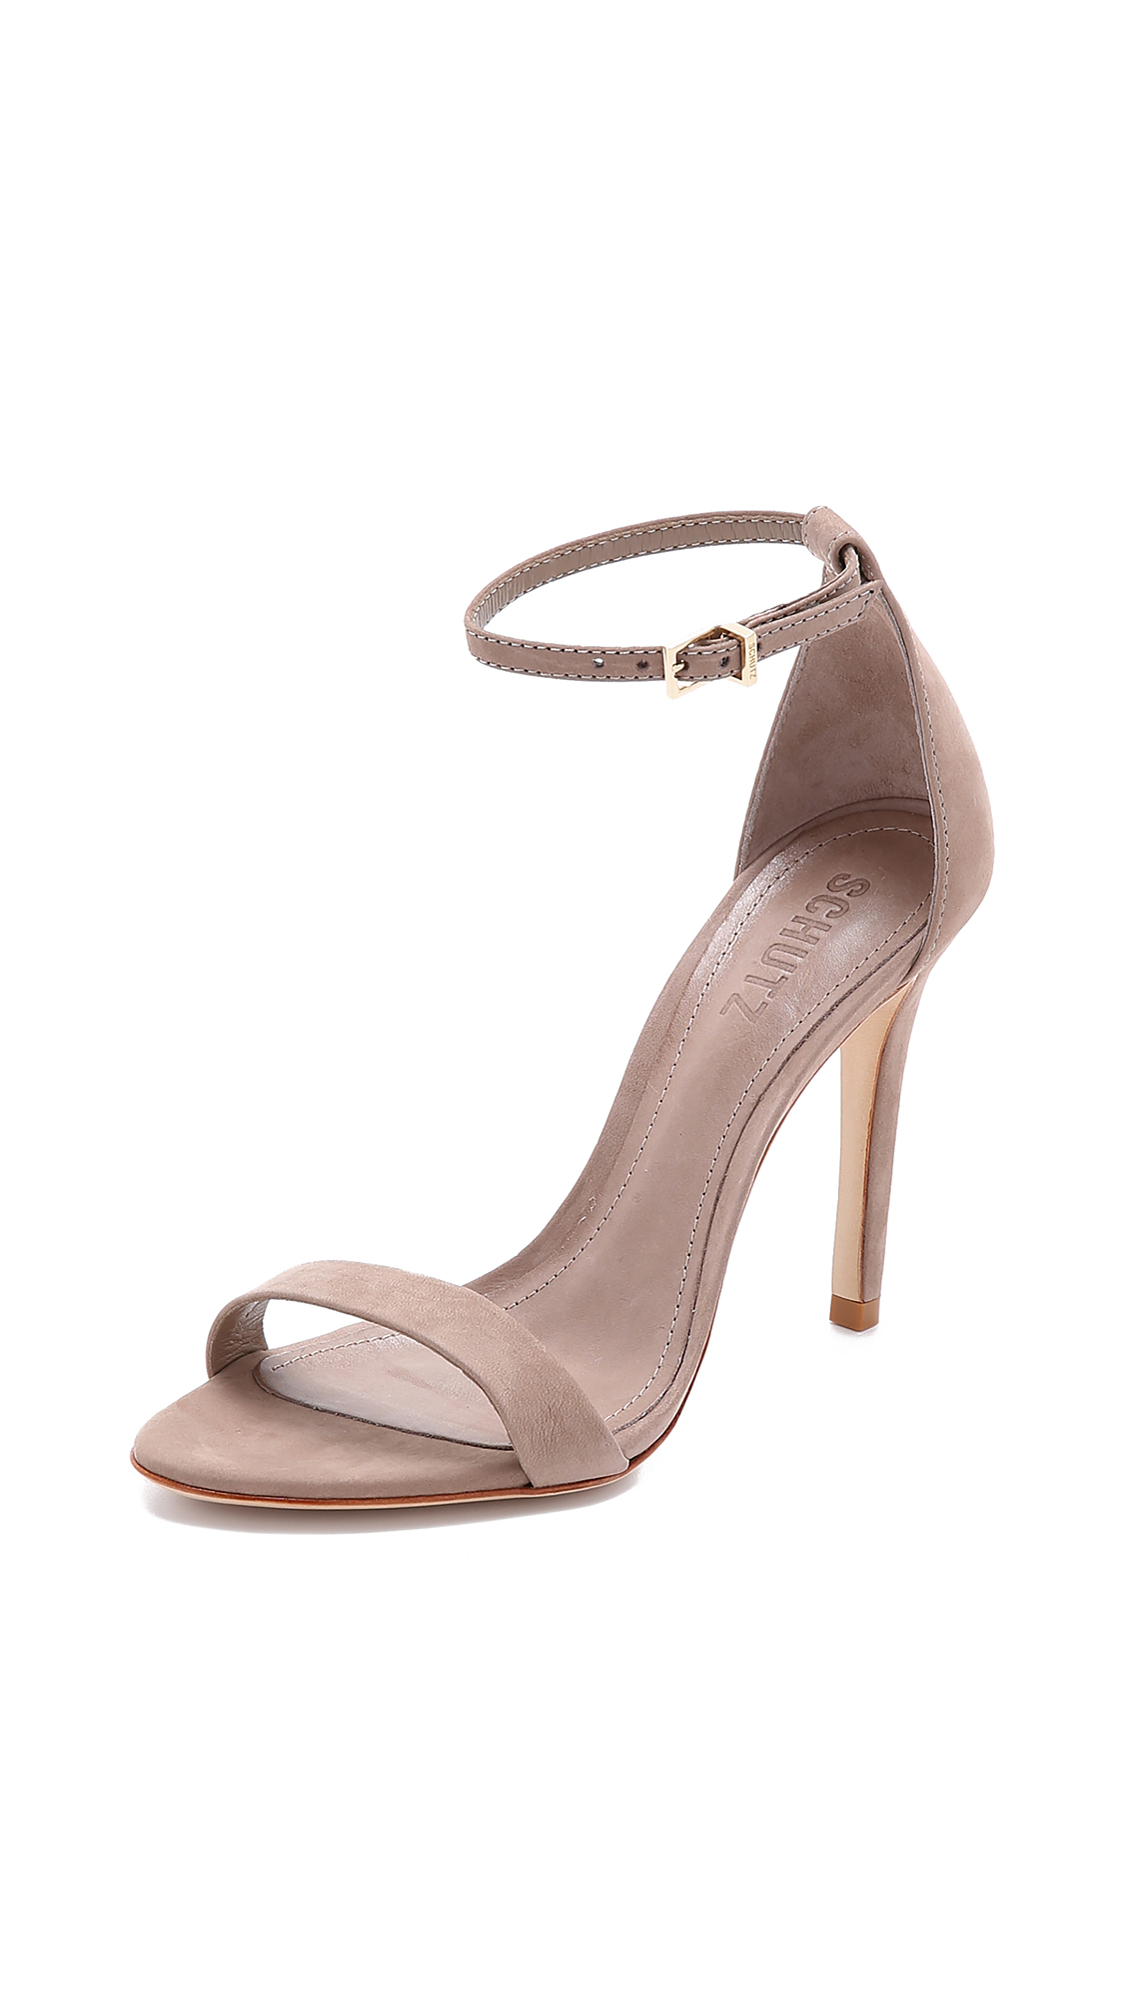 Schutz Cadey Lee Sandals - Neutral